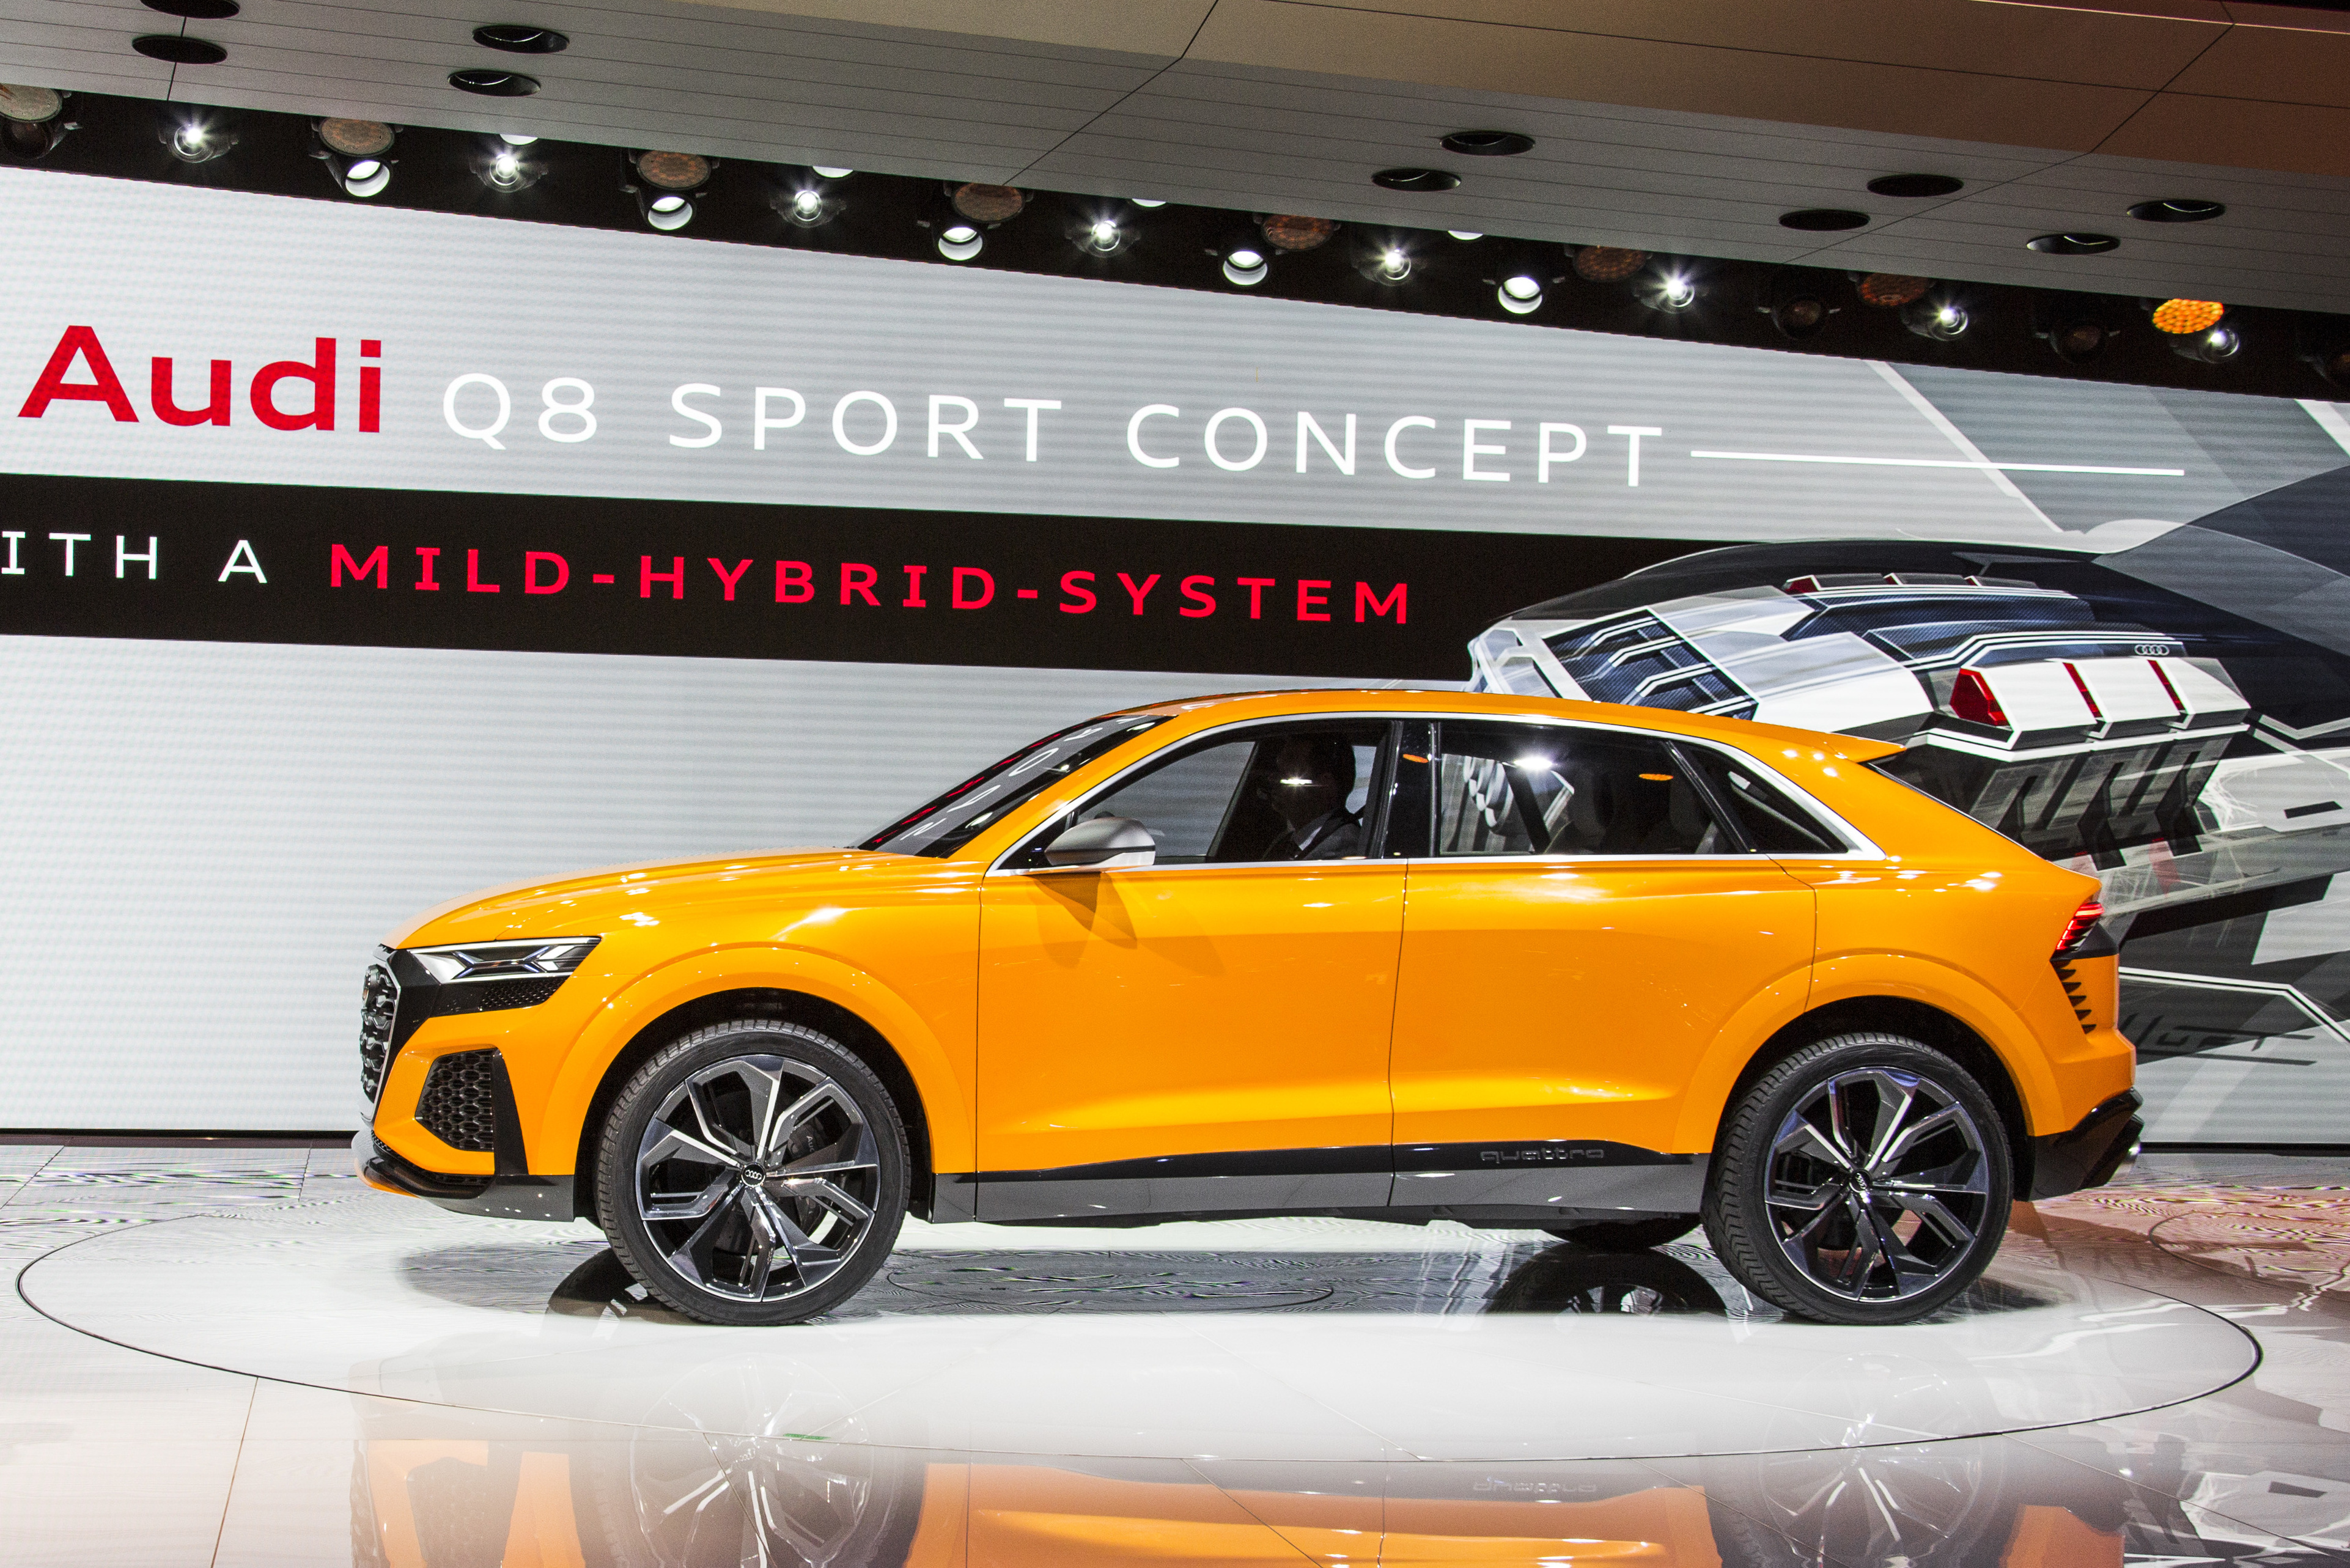 Prof. Rupert Stadler (Chairman of the Board of Management of AUDI AG); next to the new Audi Q8 sport concept on the Geneva Motorshow 2017.